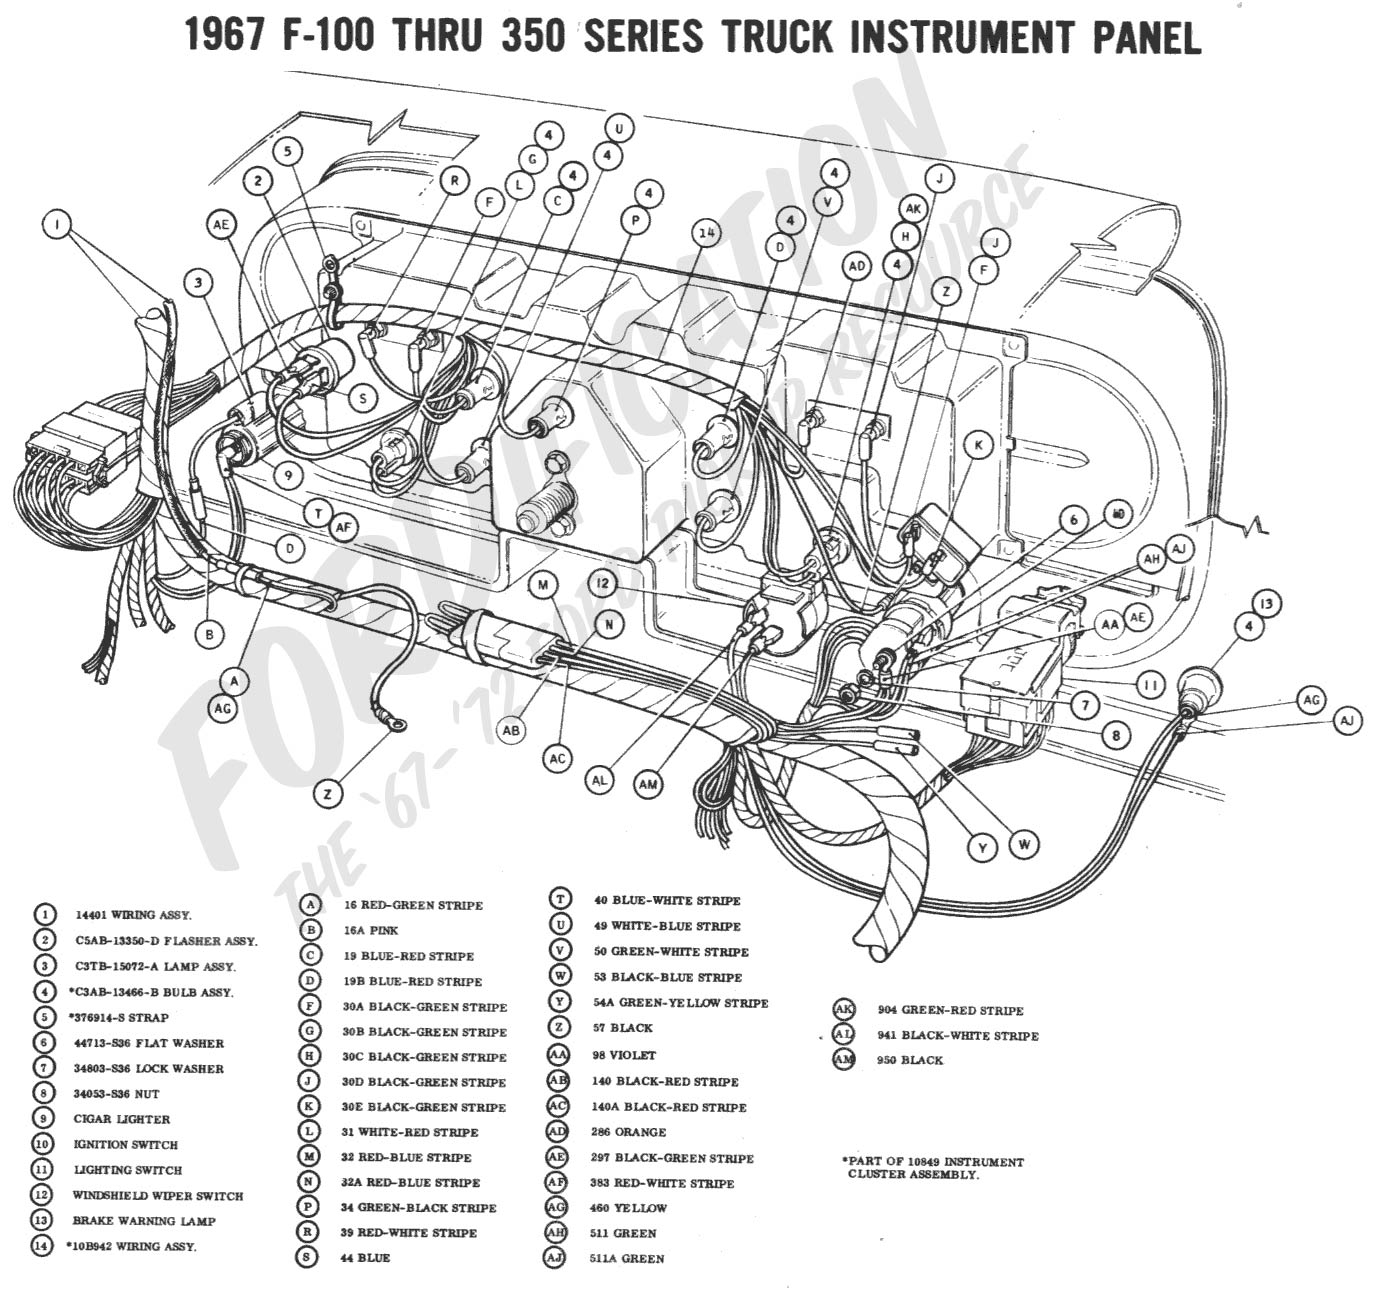 wiring 1967instrumentpanel ford truck technical drawings and schematics section h wiring 1967 mustang instrument cluster wiring diagram at sewacar.co